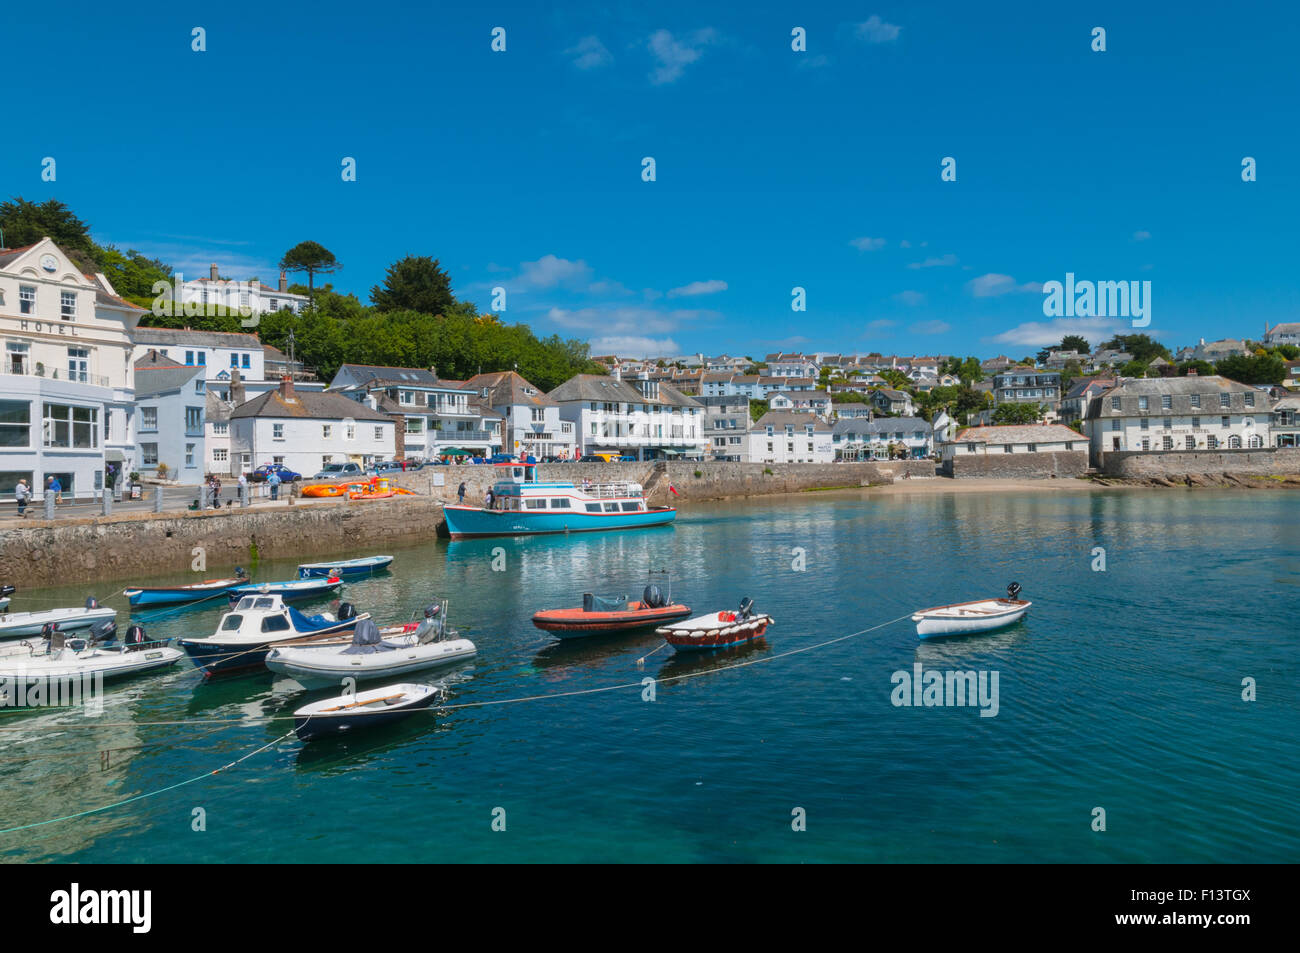 Boote in St. Mawes Hafen St Mawes Cornwall England Stockbild